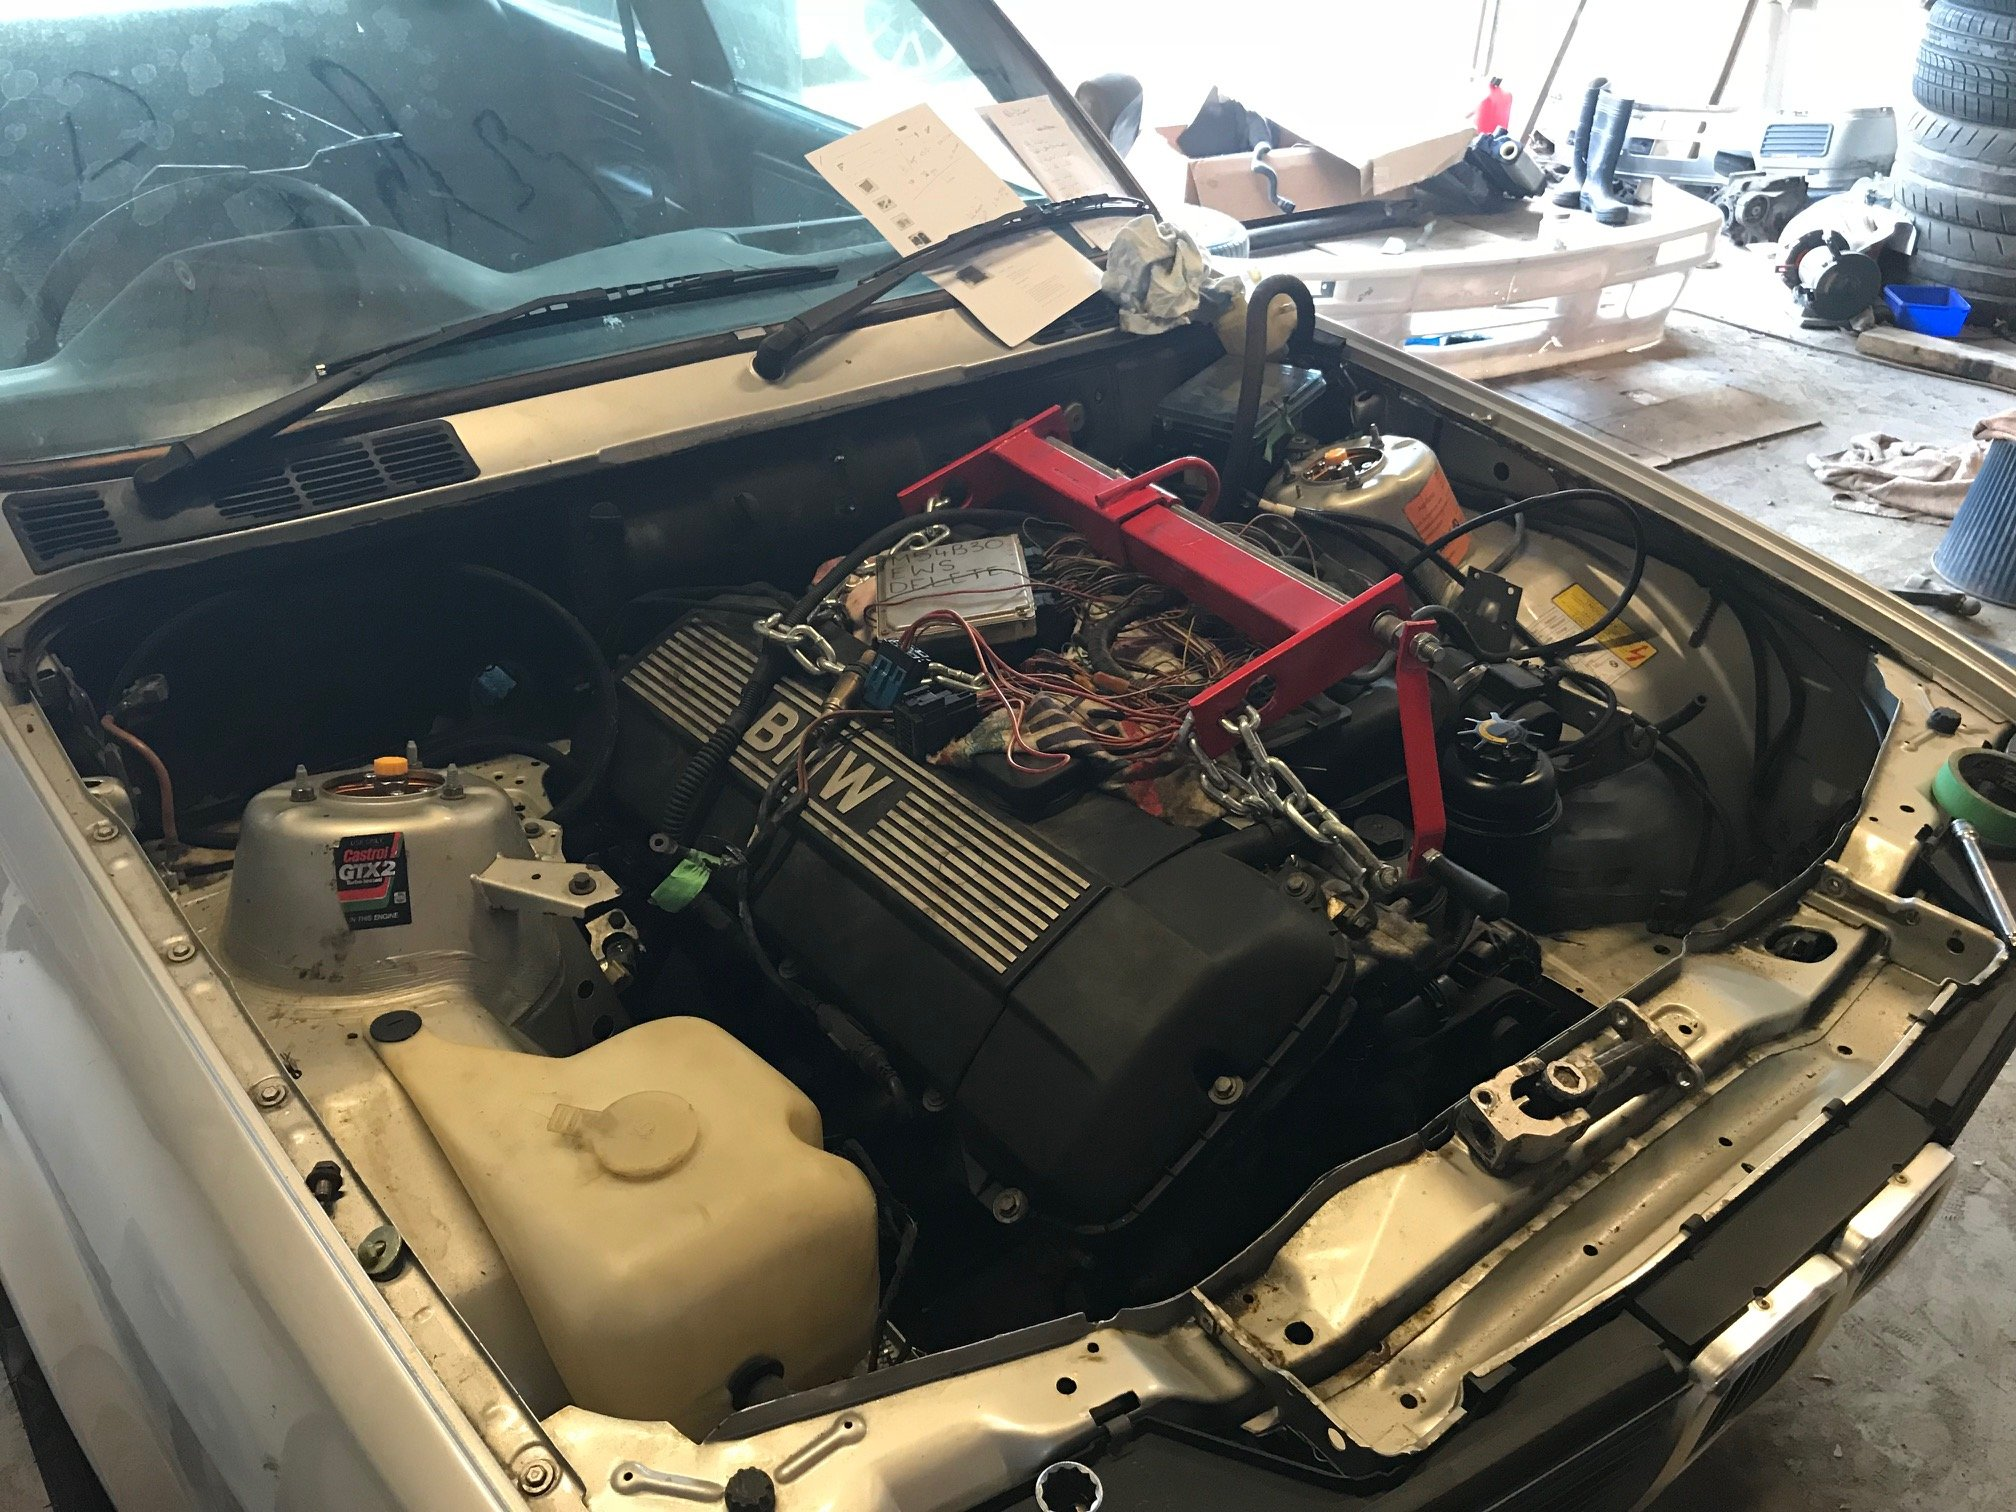 E30 Coupe - Engine swap to M54B30 & too many other mod's - Page 2